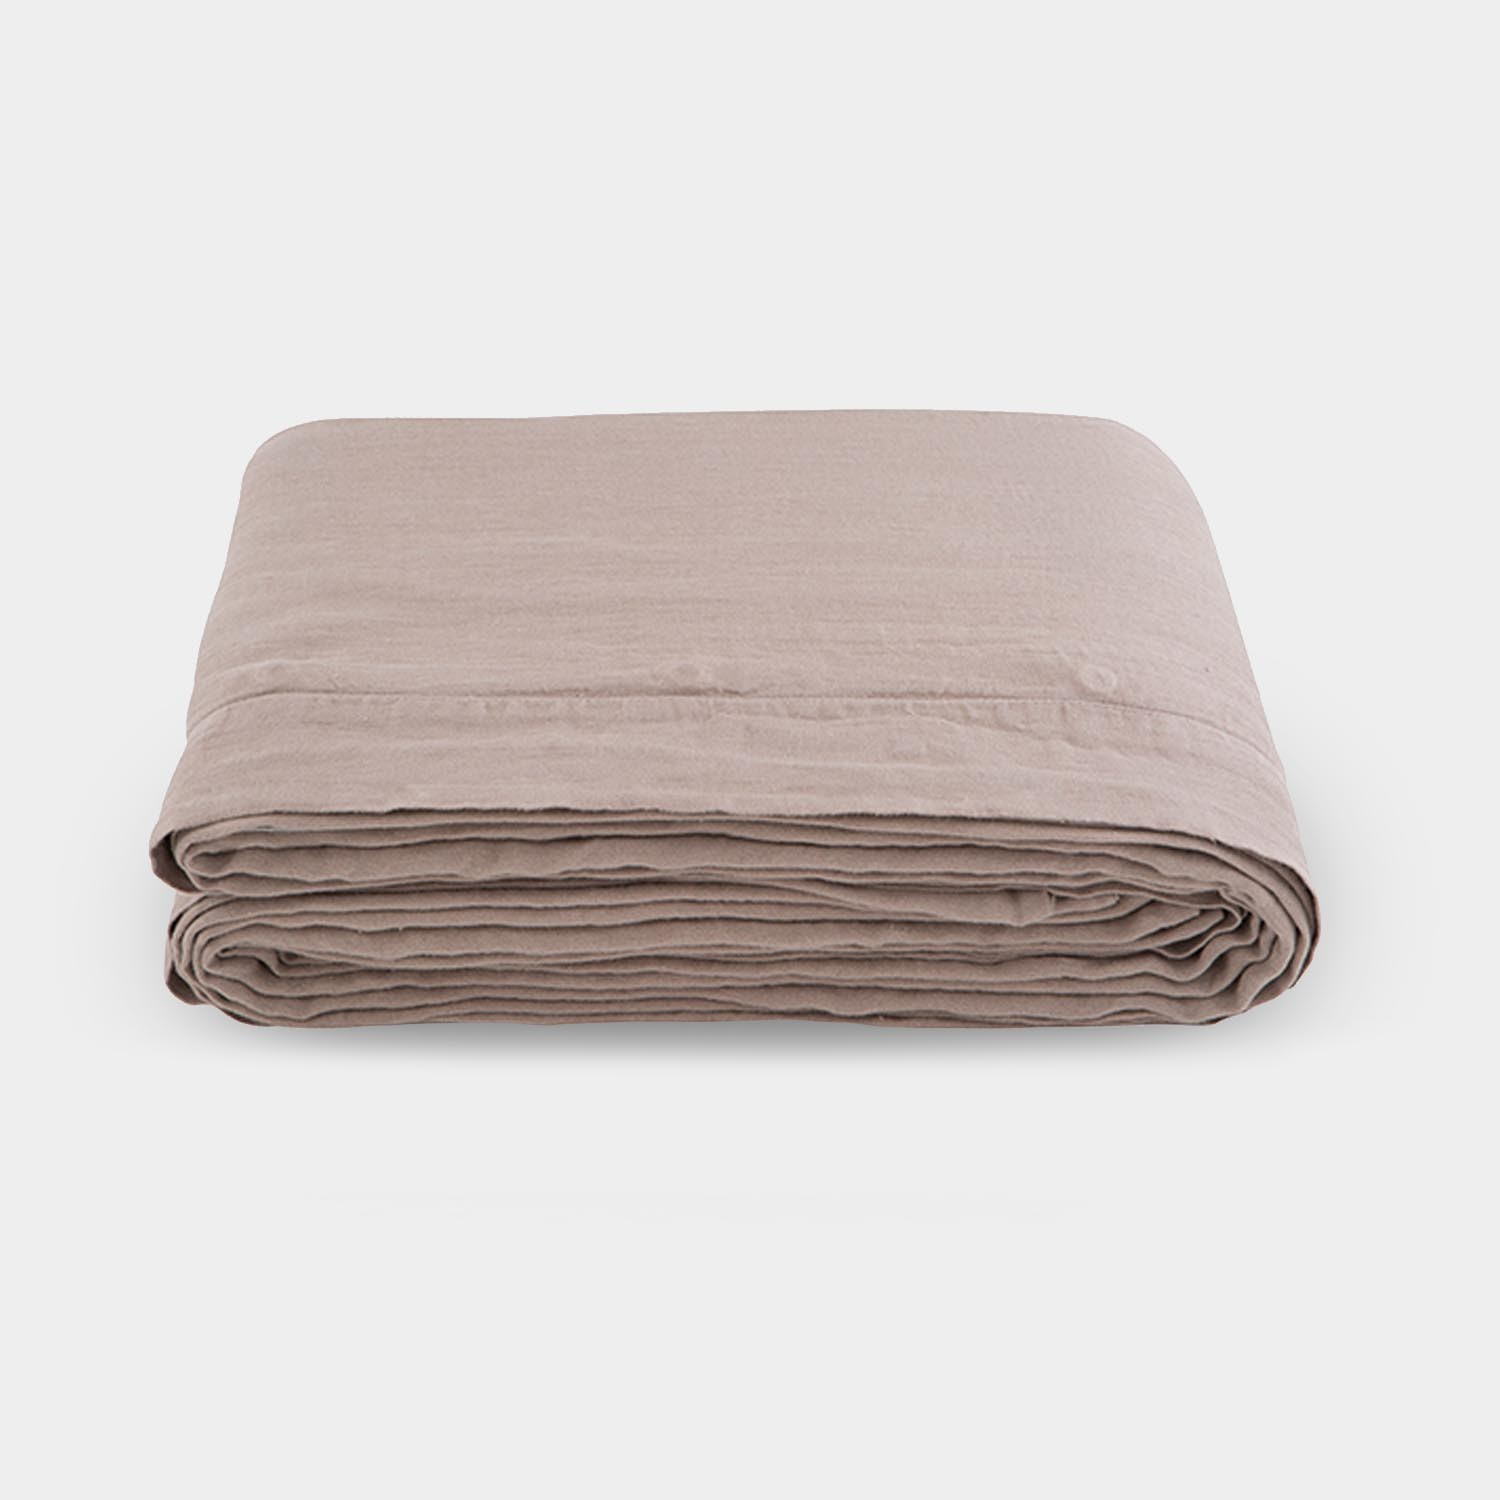 Linen Satin Duvet Cover, Warm Taupe